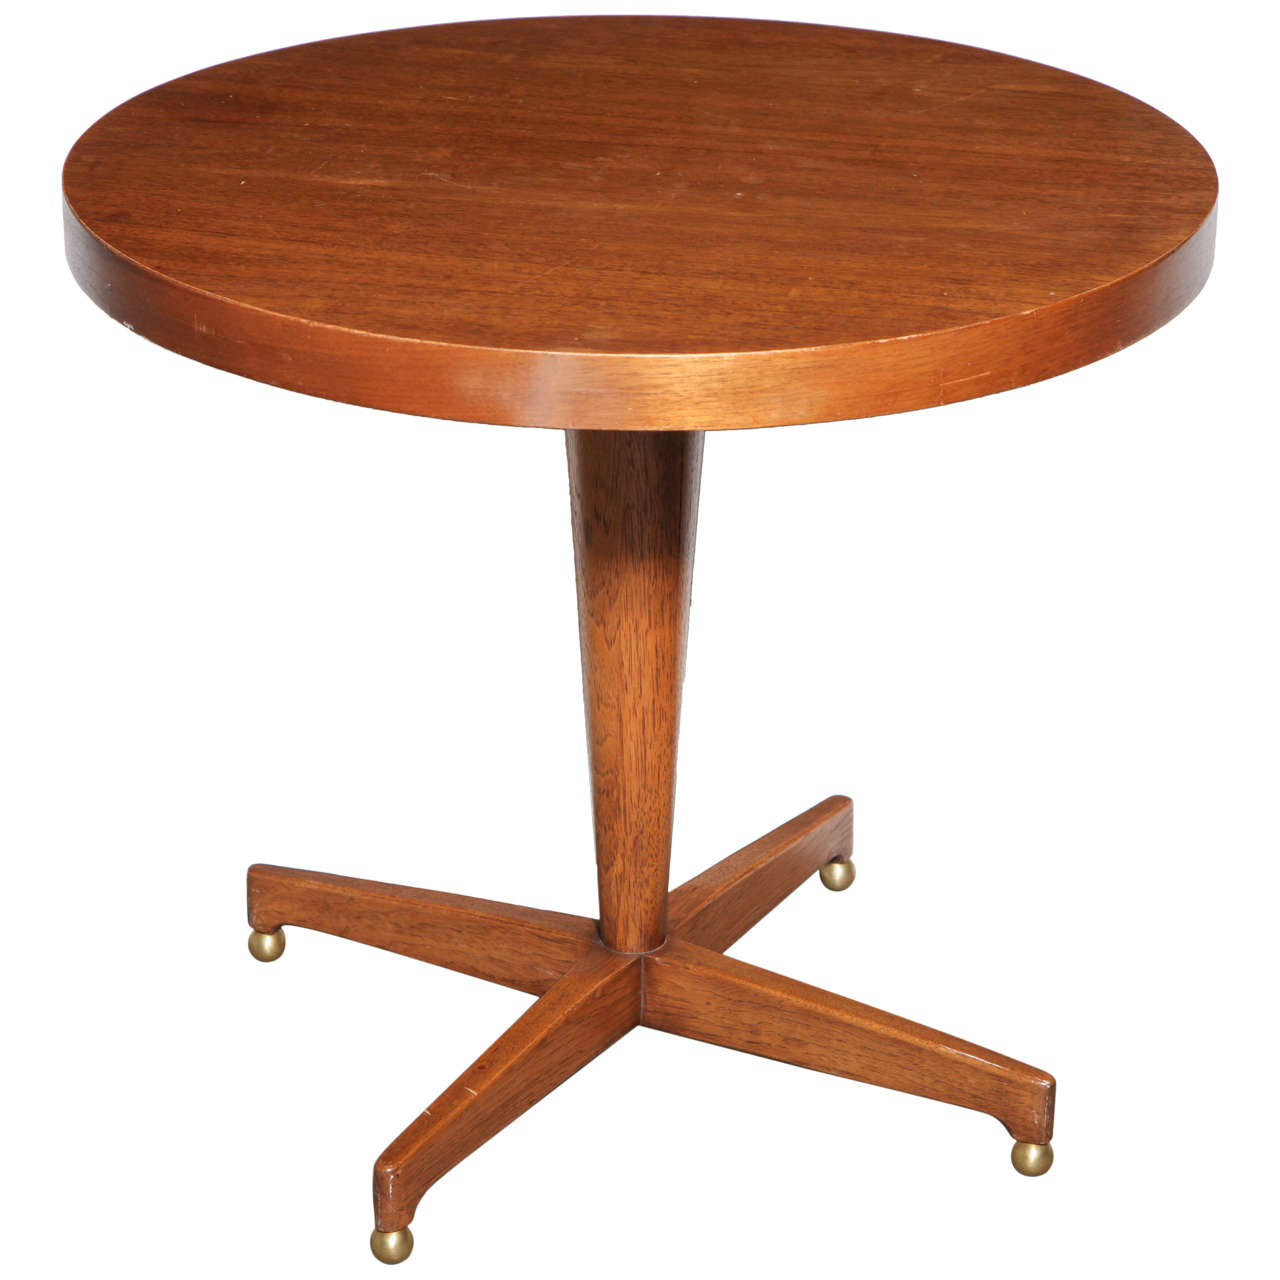 Mid century round wood side table at 1stdibs for Round wood side table